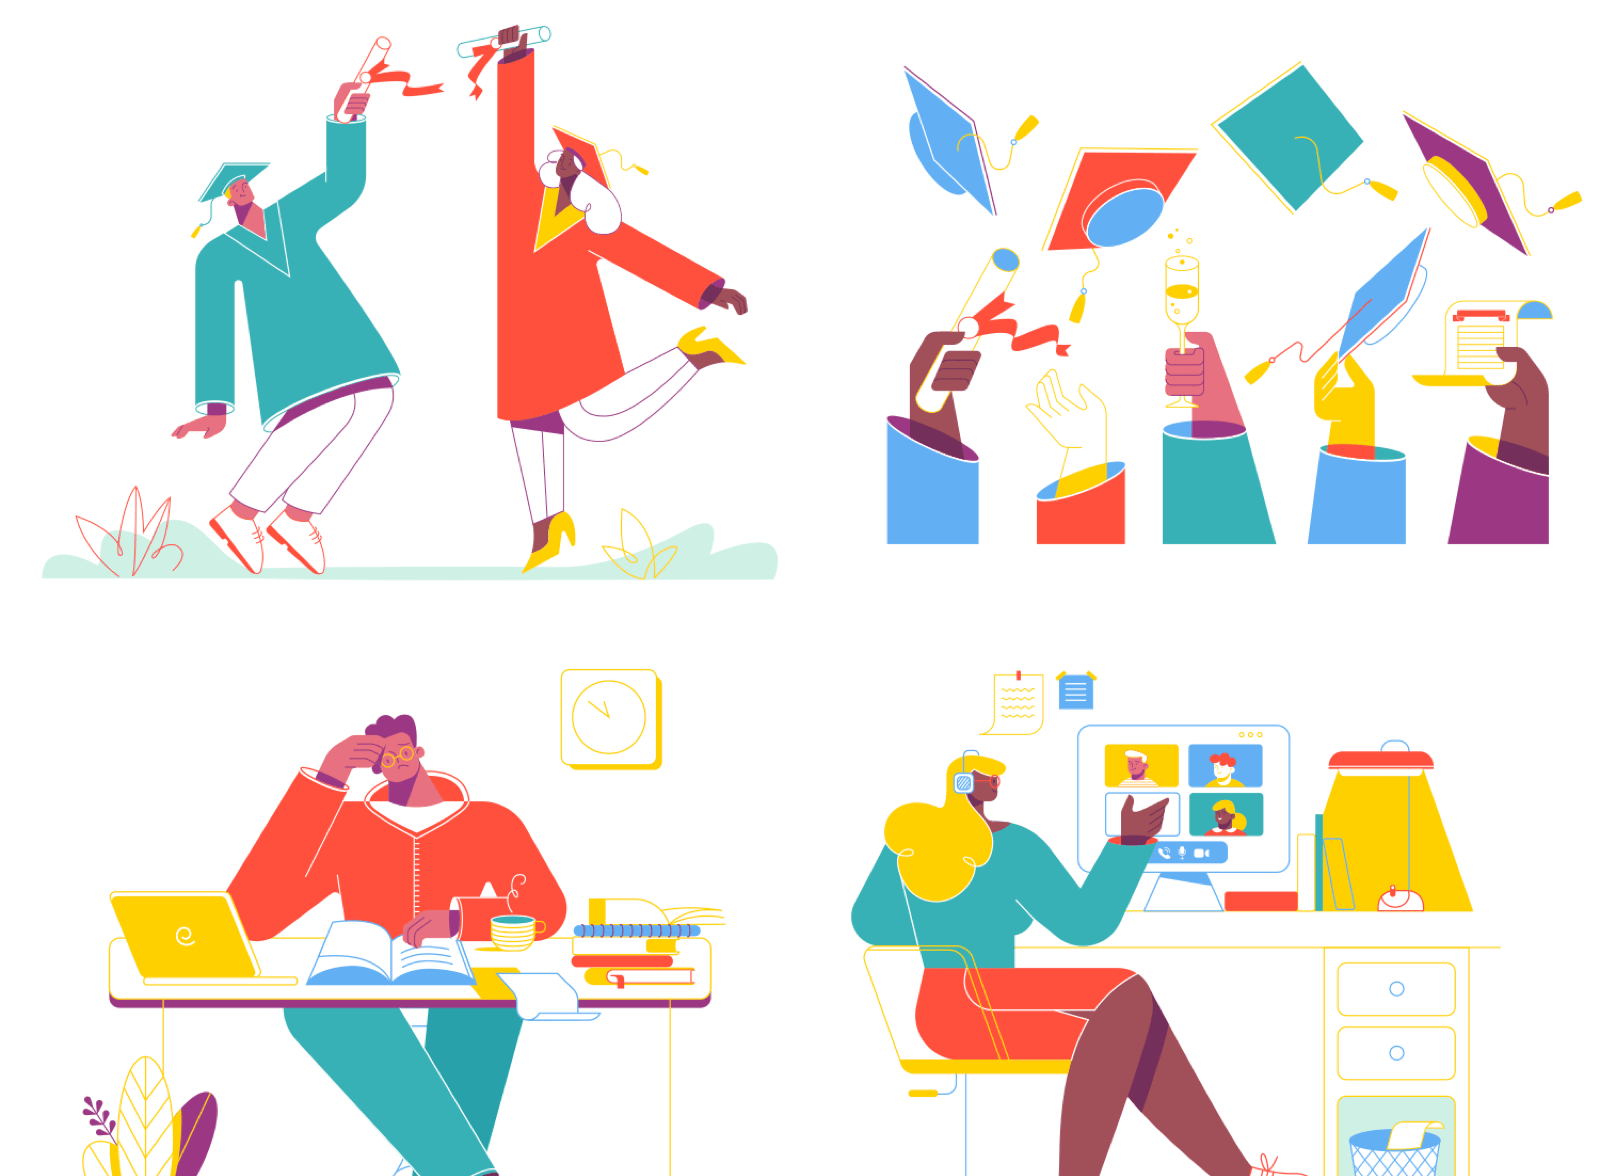 Education & Online Learning Illustrations